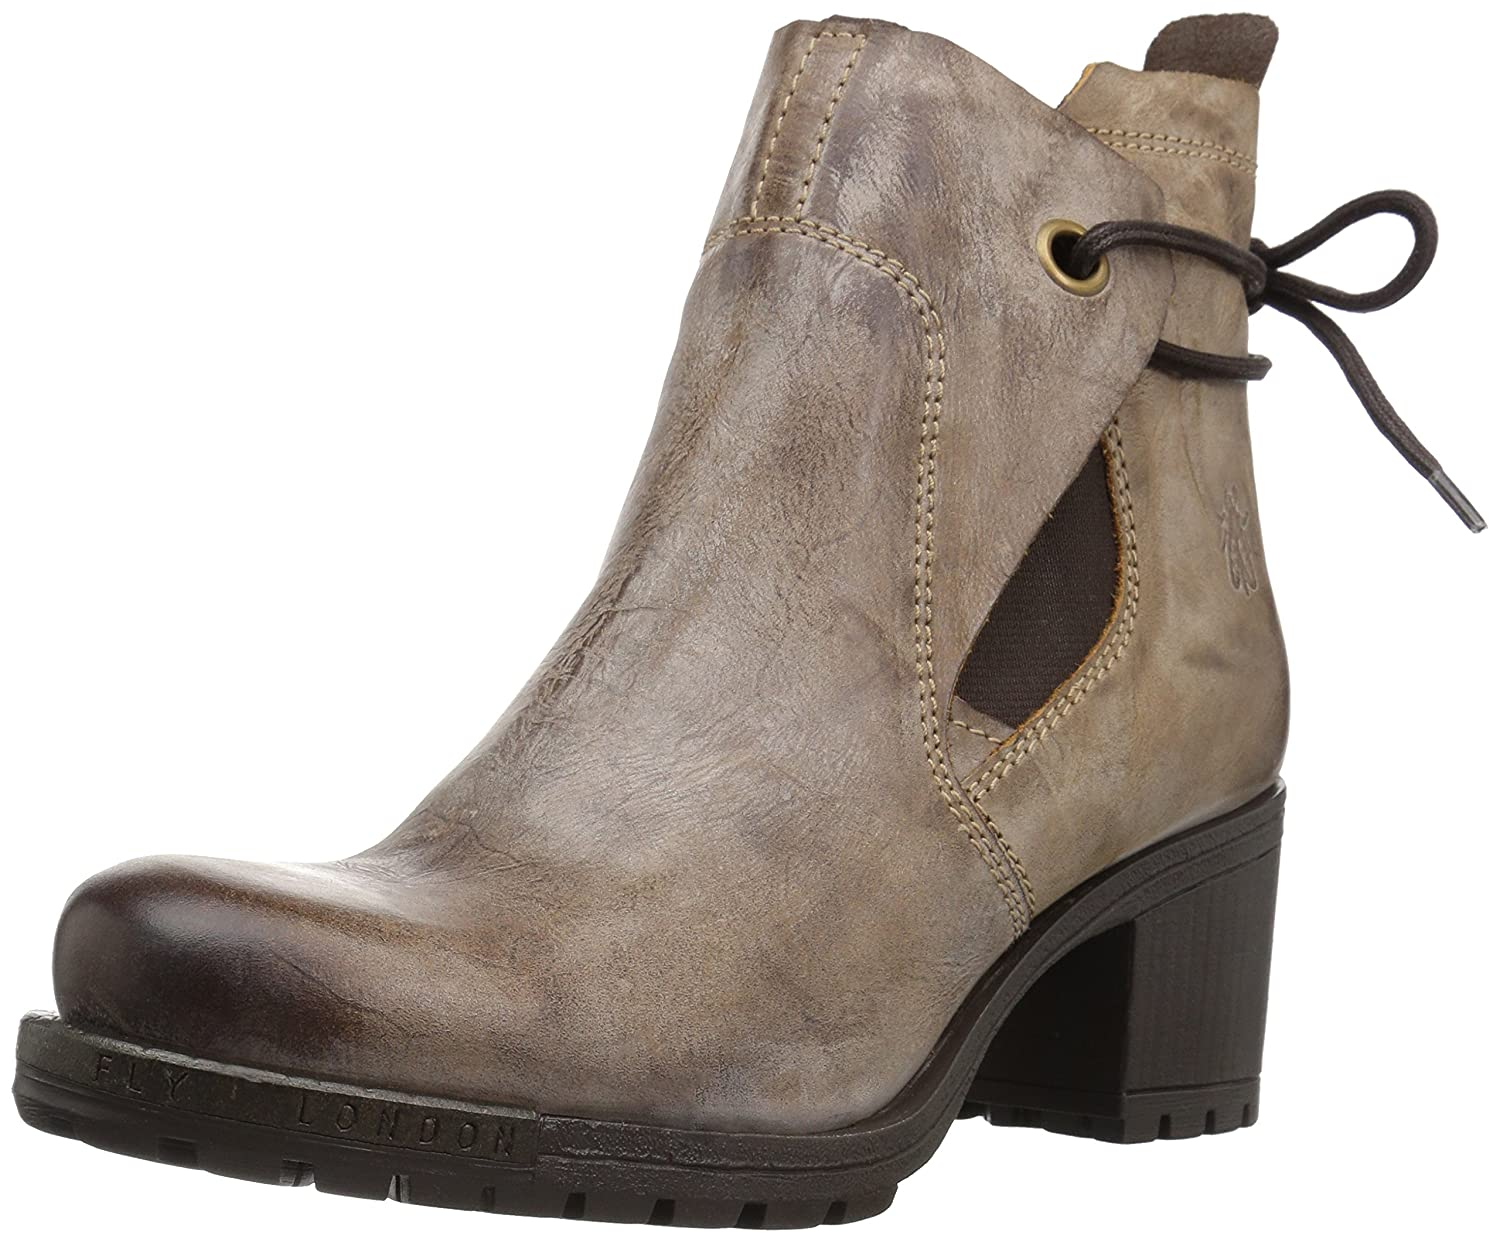 FLY London Women's Luxe048fly Fashion Boot B06WWH8ZPK 36 M EU (5.5-6 US)|Brown Alvito